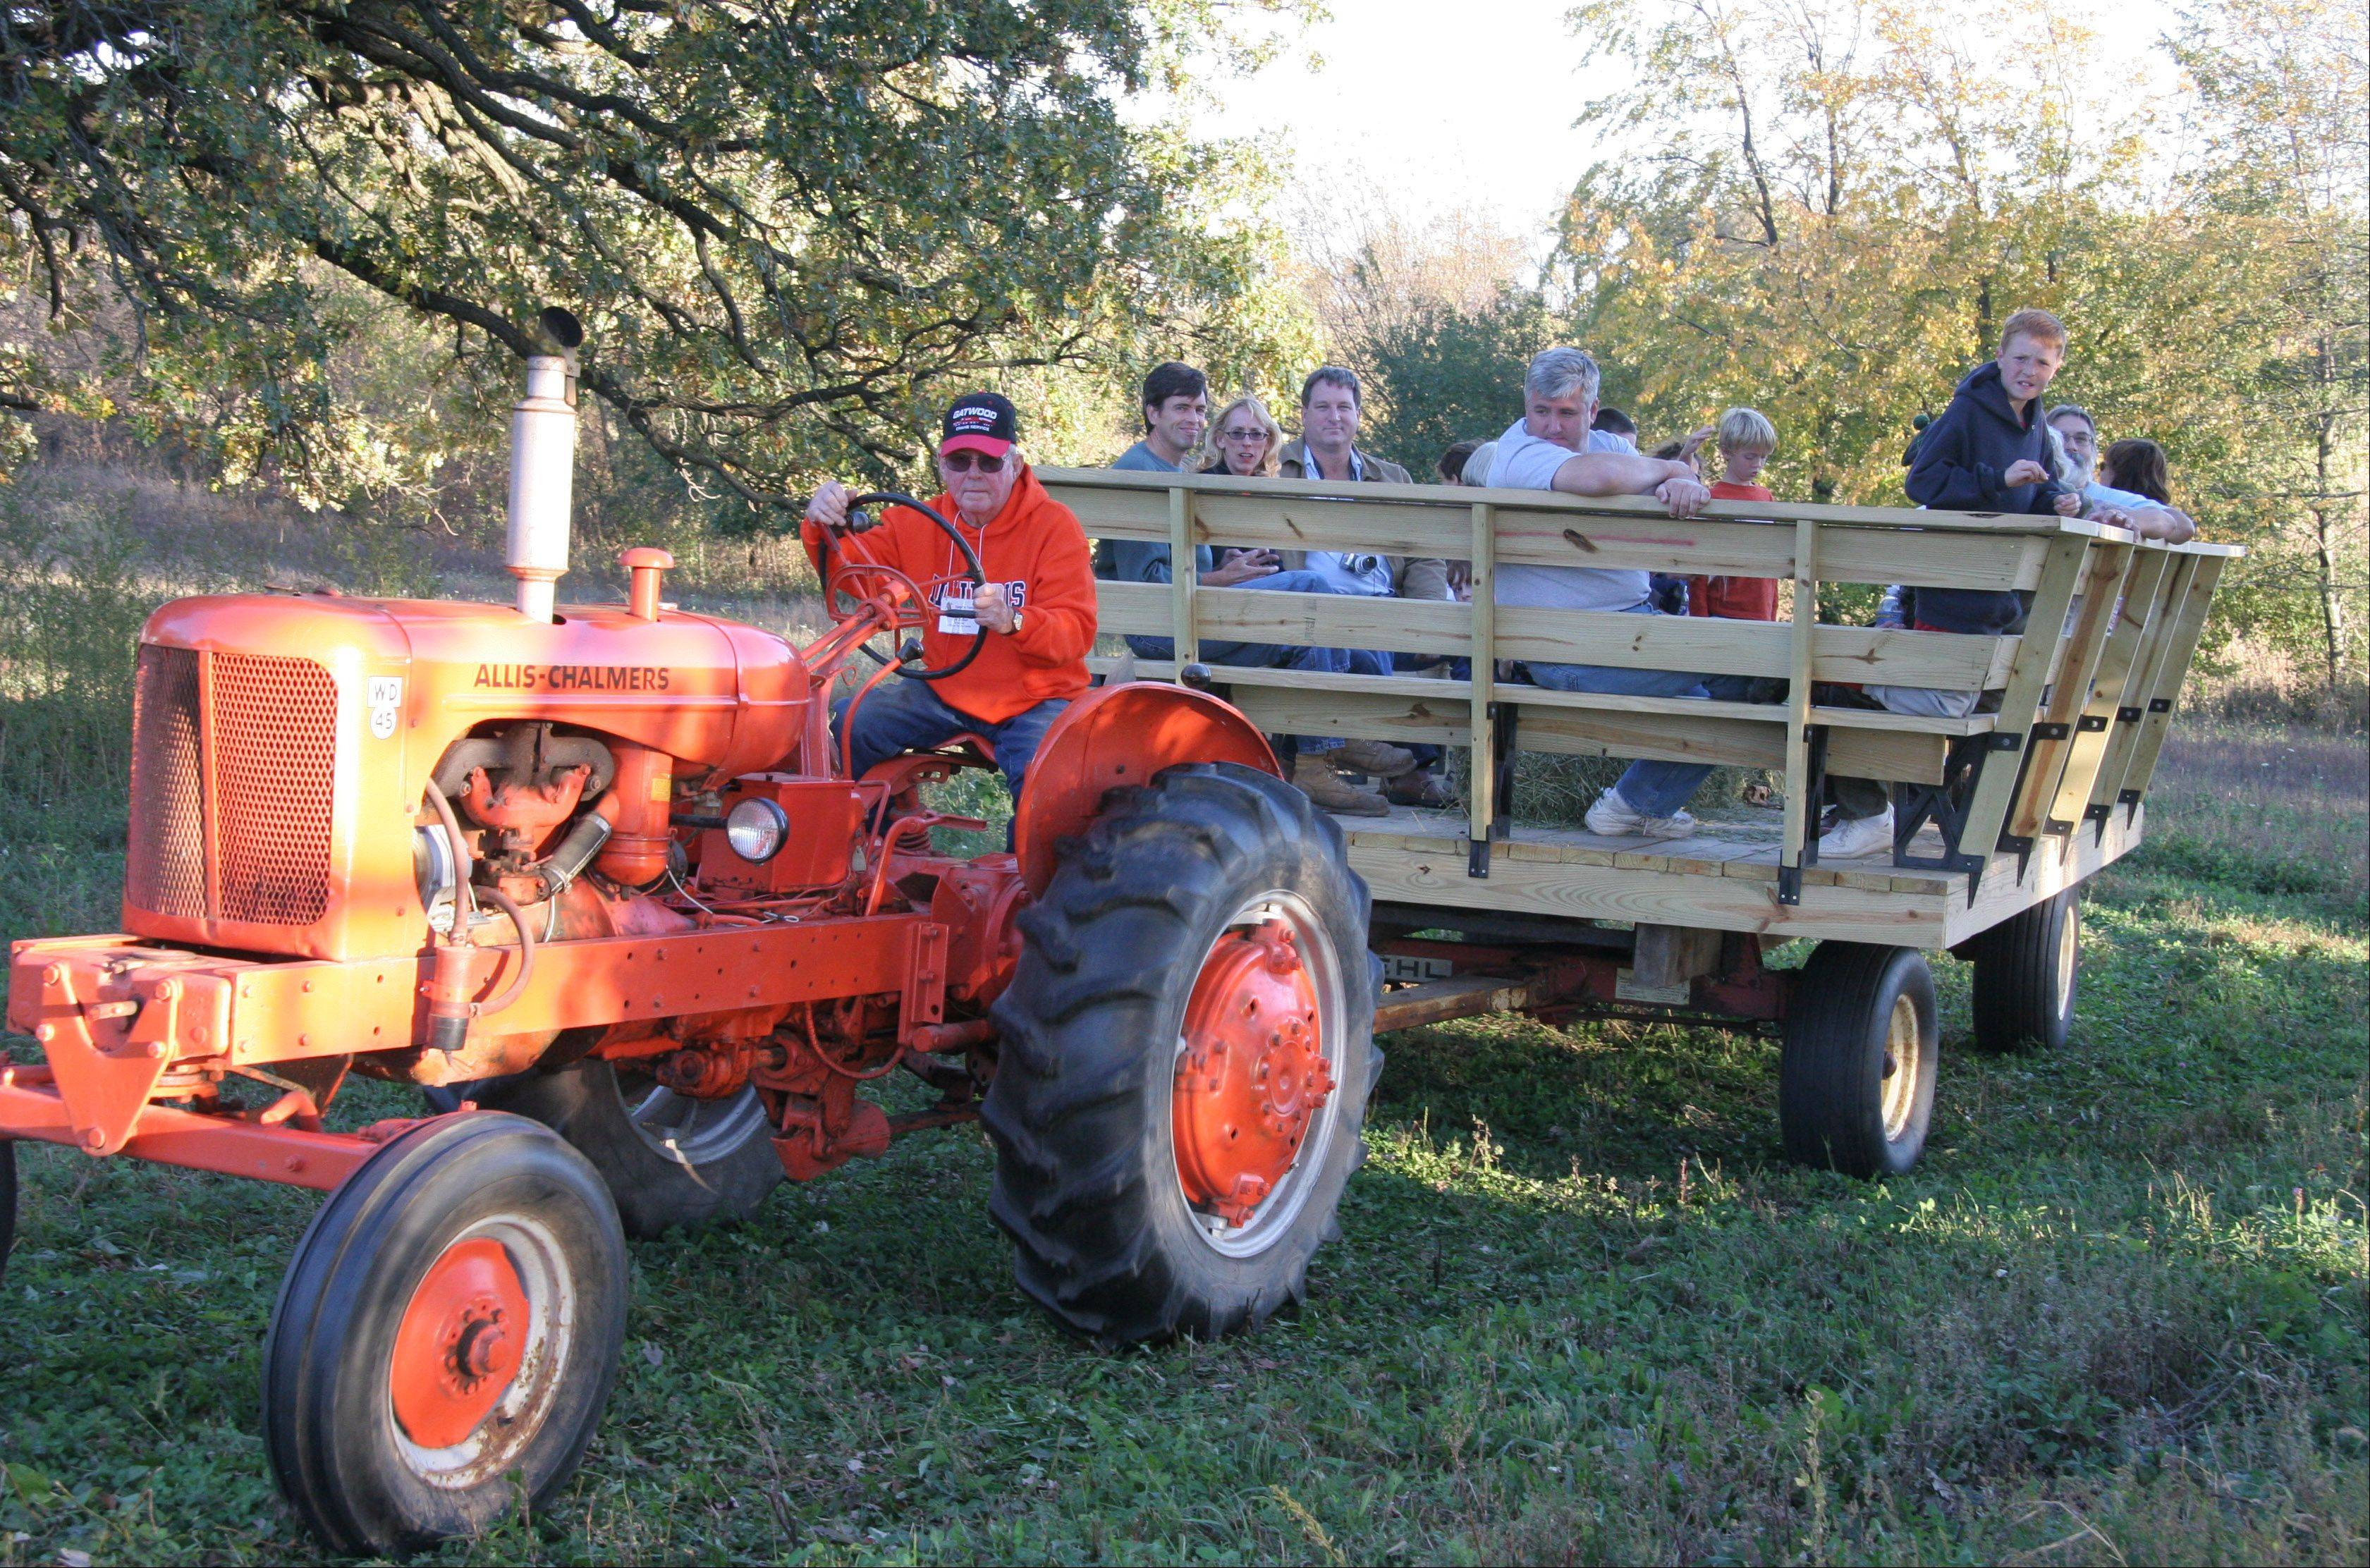 Tractor rides are among the offerings at Prairie Fest at Corron Farm.